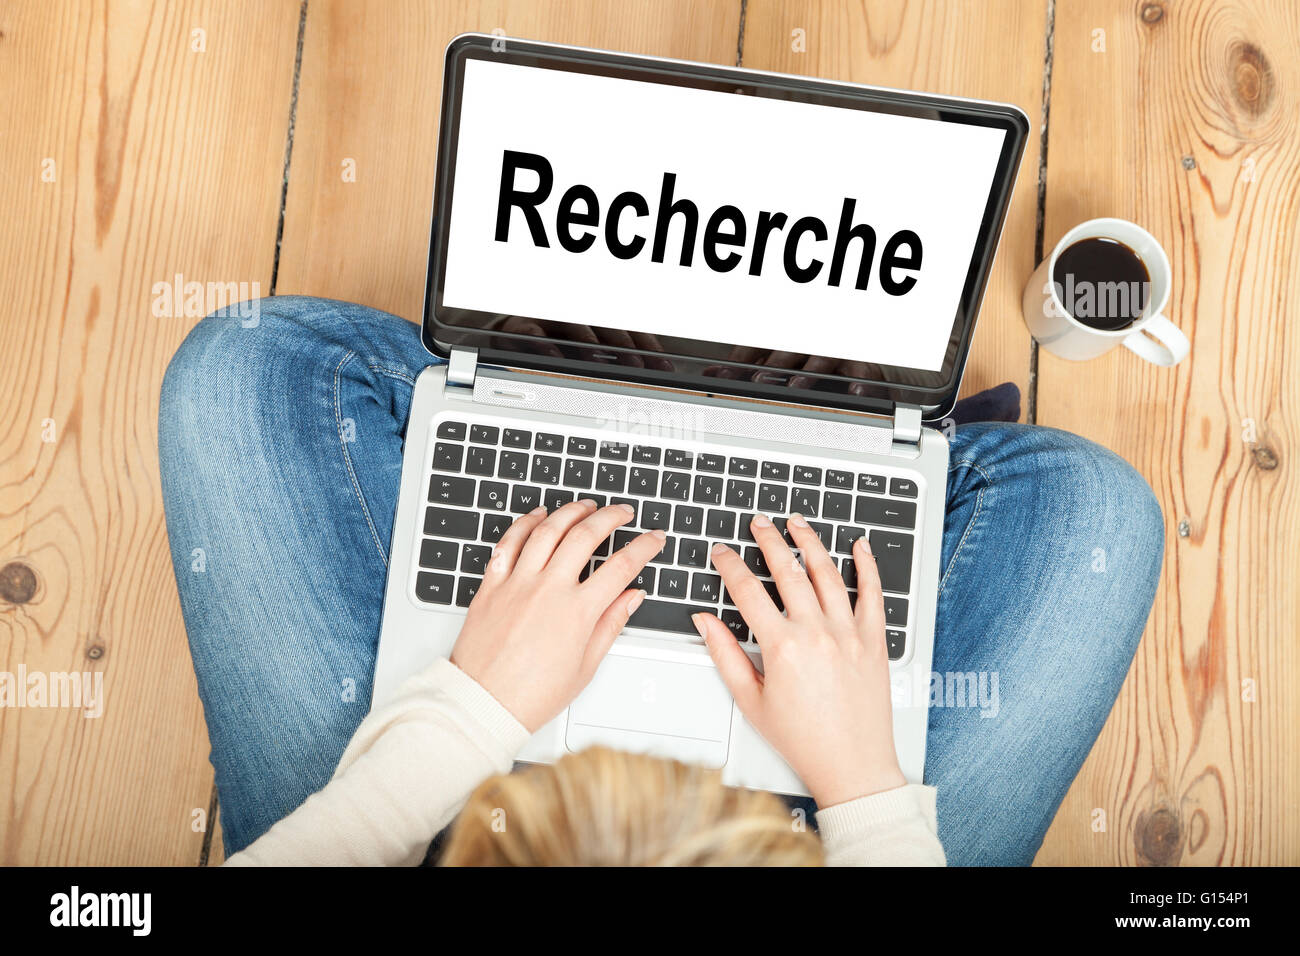 Research (in german) - Stock Image